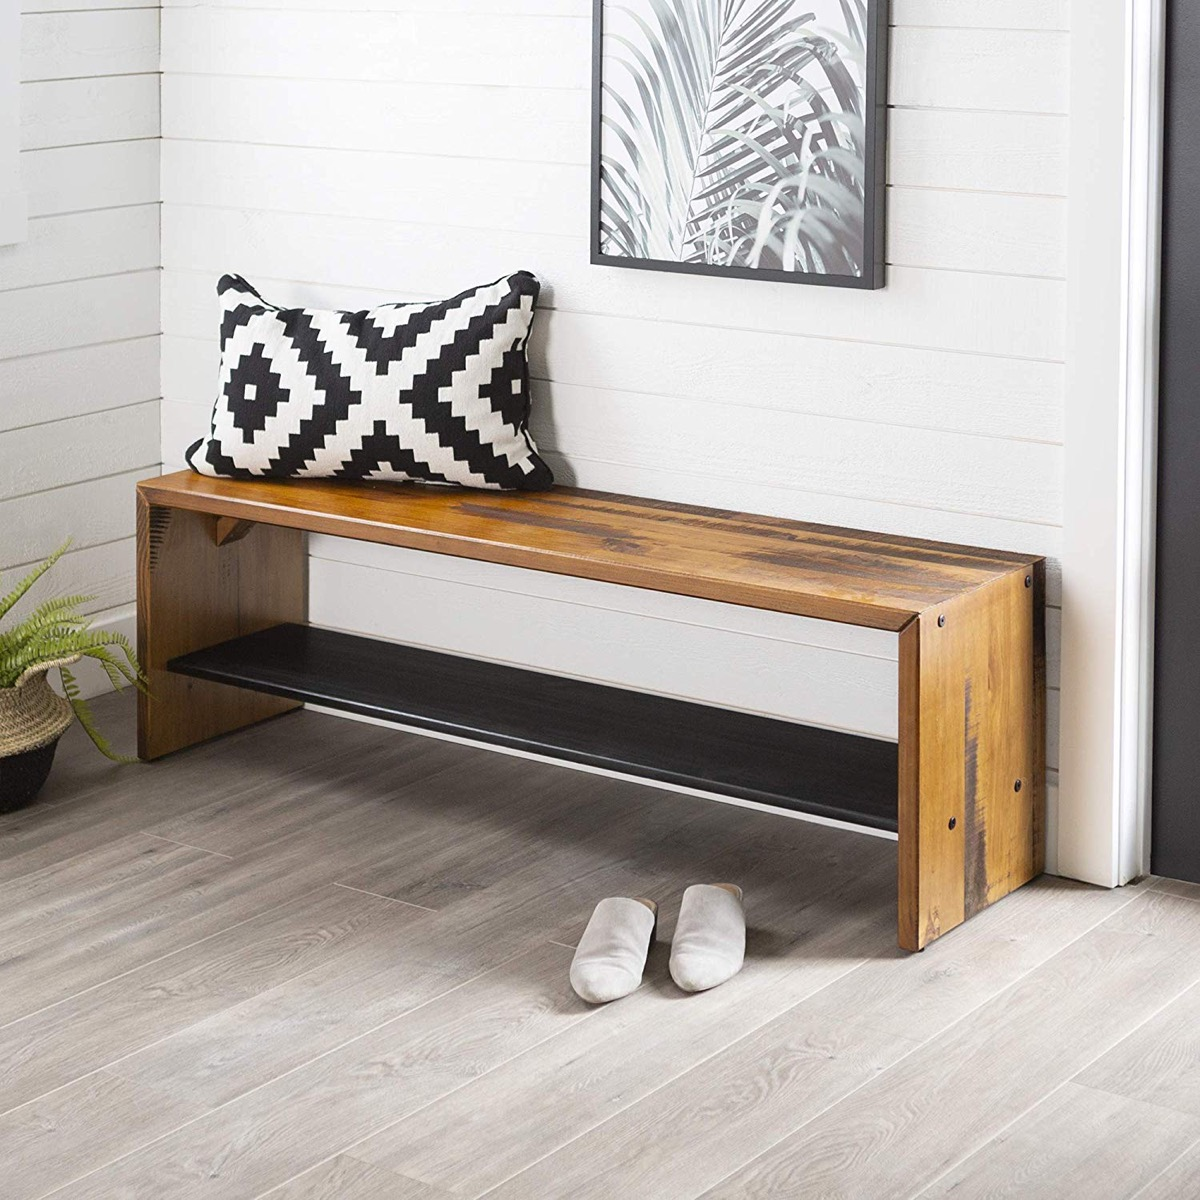 Long-Solid-Wood-Entryway-Bench-Rustic-Distressed-Finish-With-Bottom-Shelf